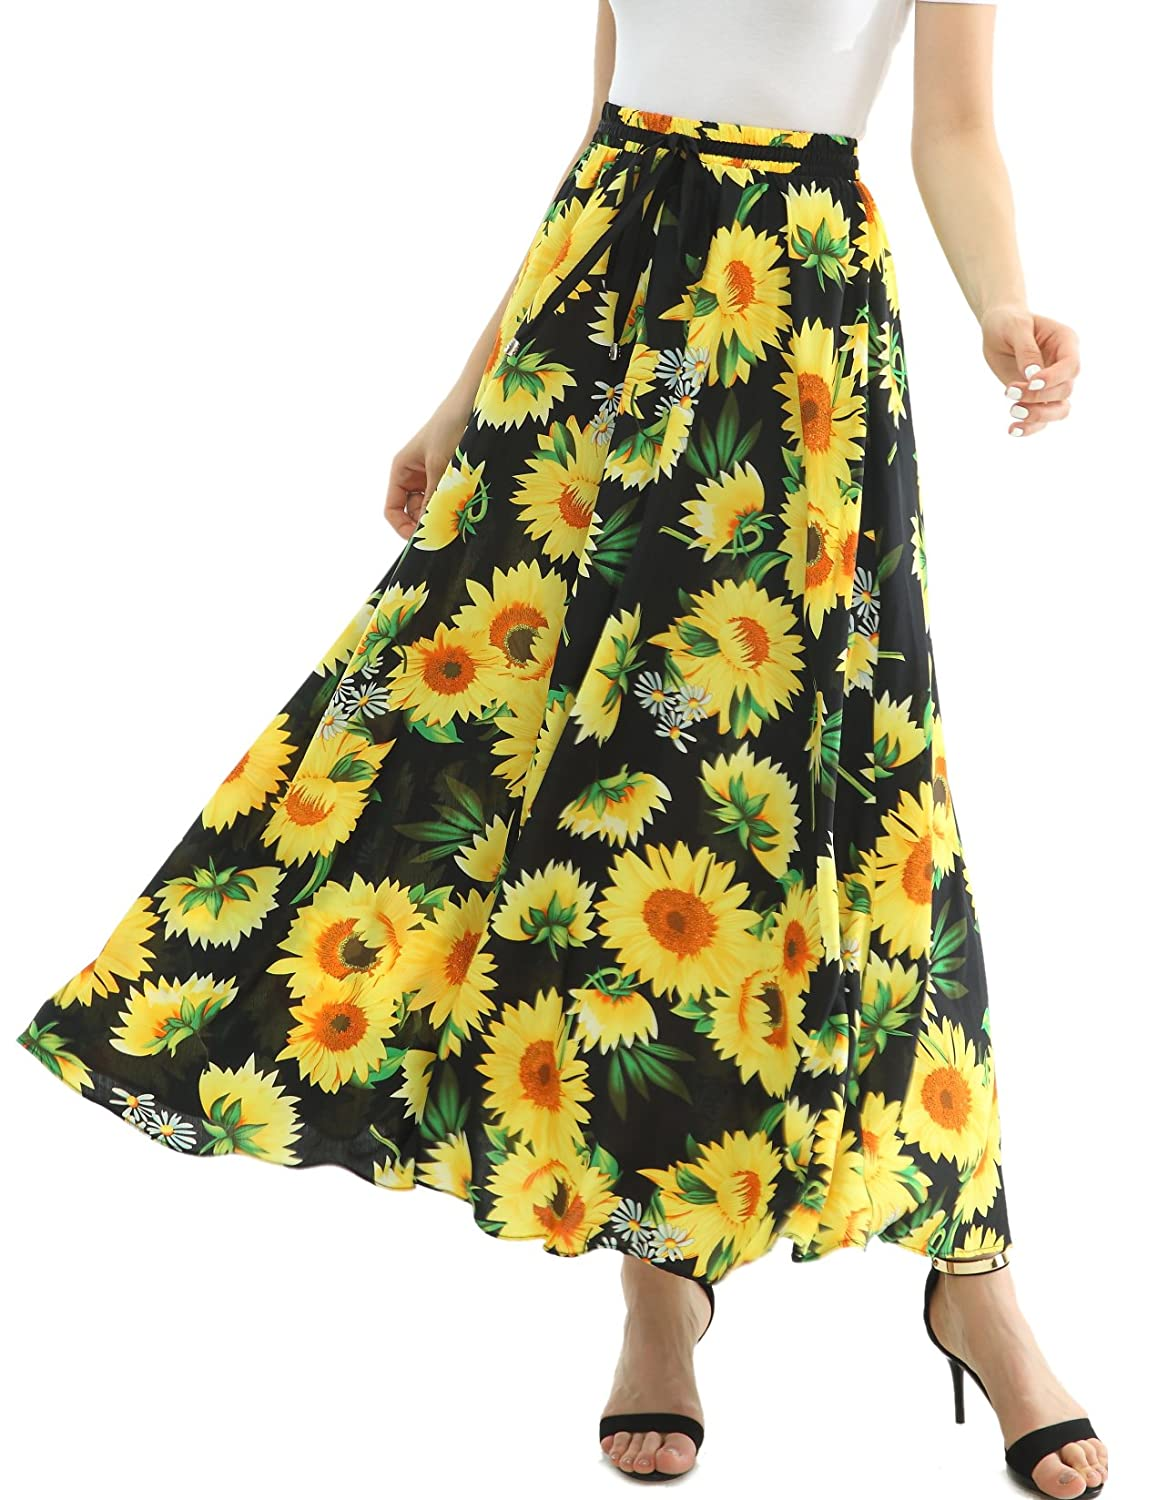 4becacf22d Design: Elastic high waist, Tropical Sun Flower Print, Ankle Length, Flowy  skirt,long maxi skirt. Style:Flowy A-line pleated pattern,best maxi skirt  for ...